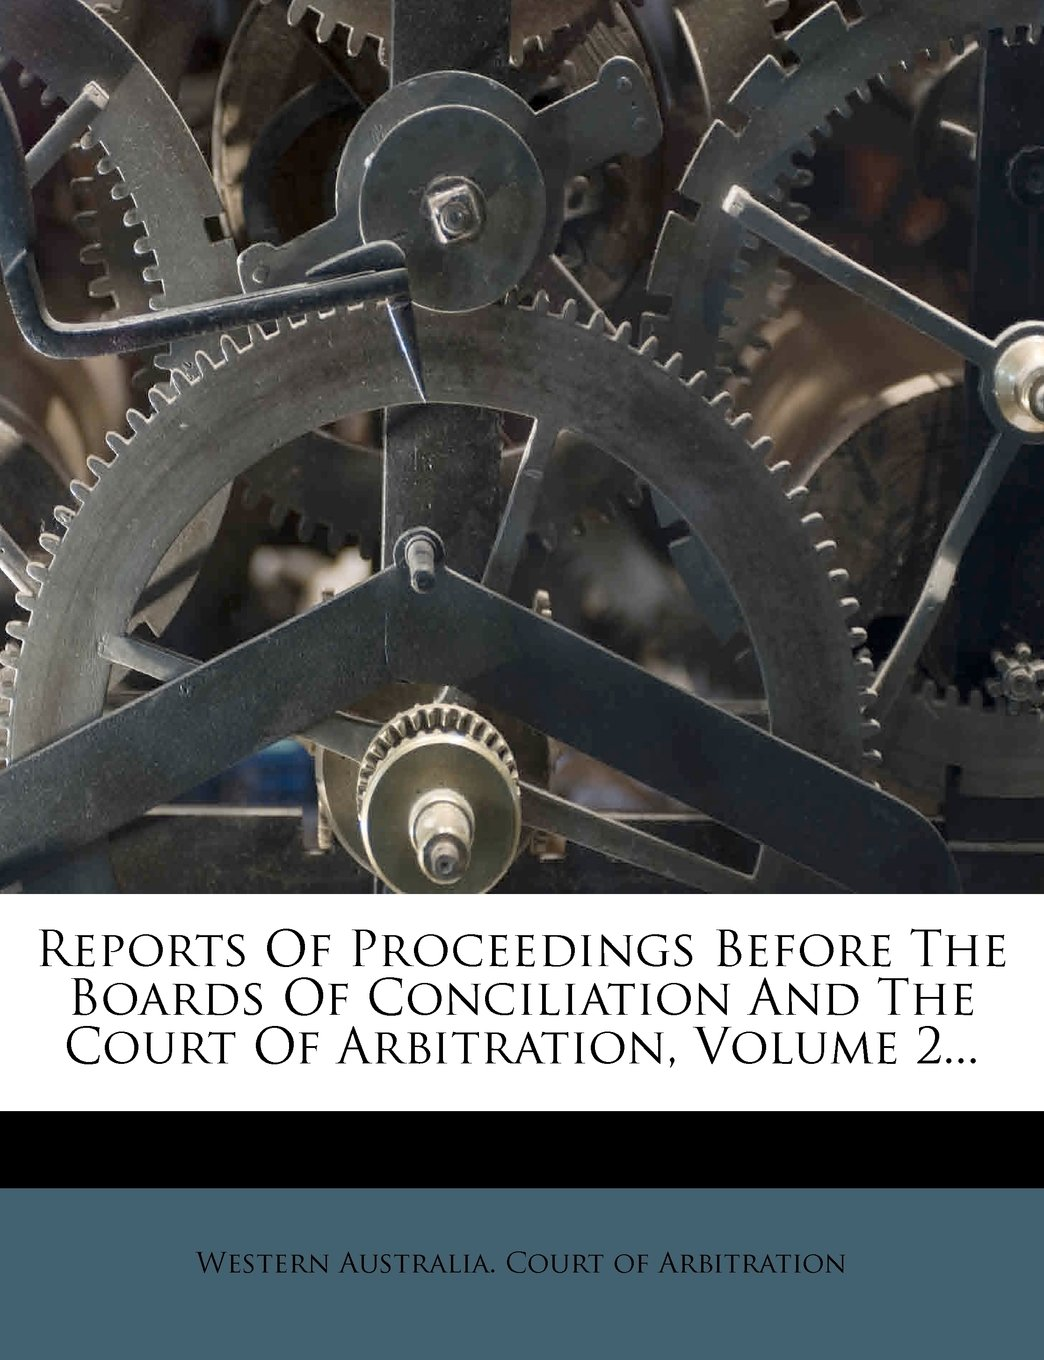 Reports Of Proceedings Before The Boards Of Conciliation And The Court Of Arbitration, Volume 2... pdf